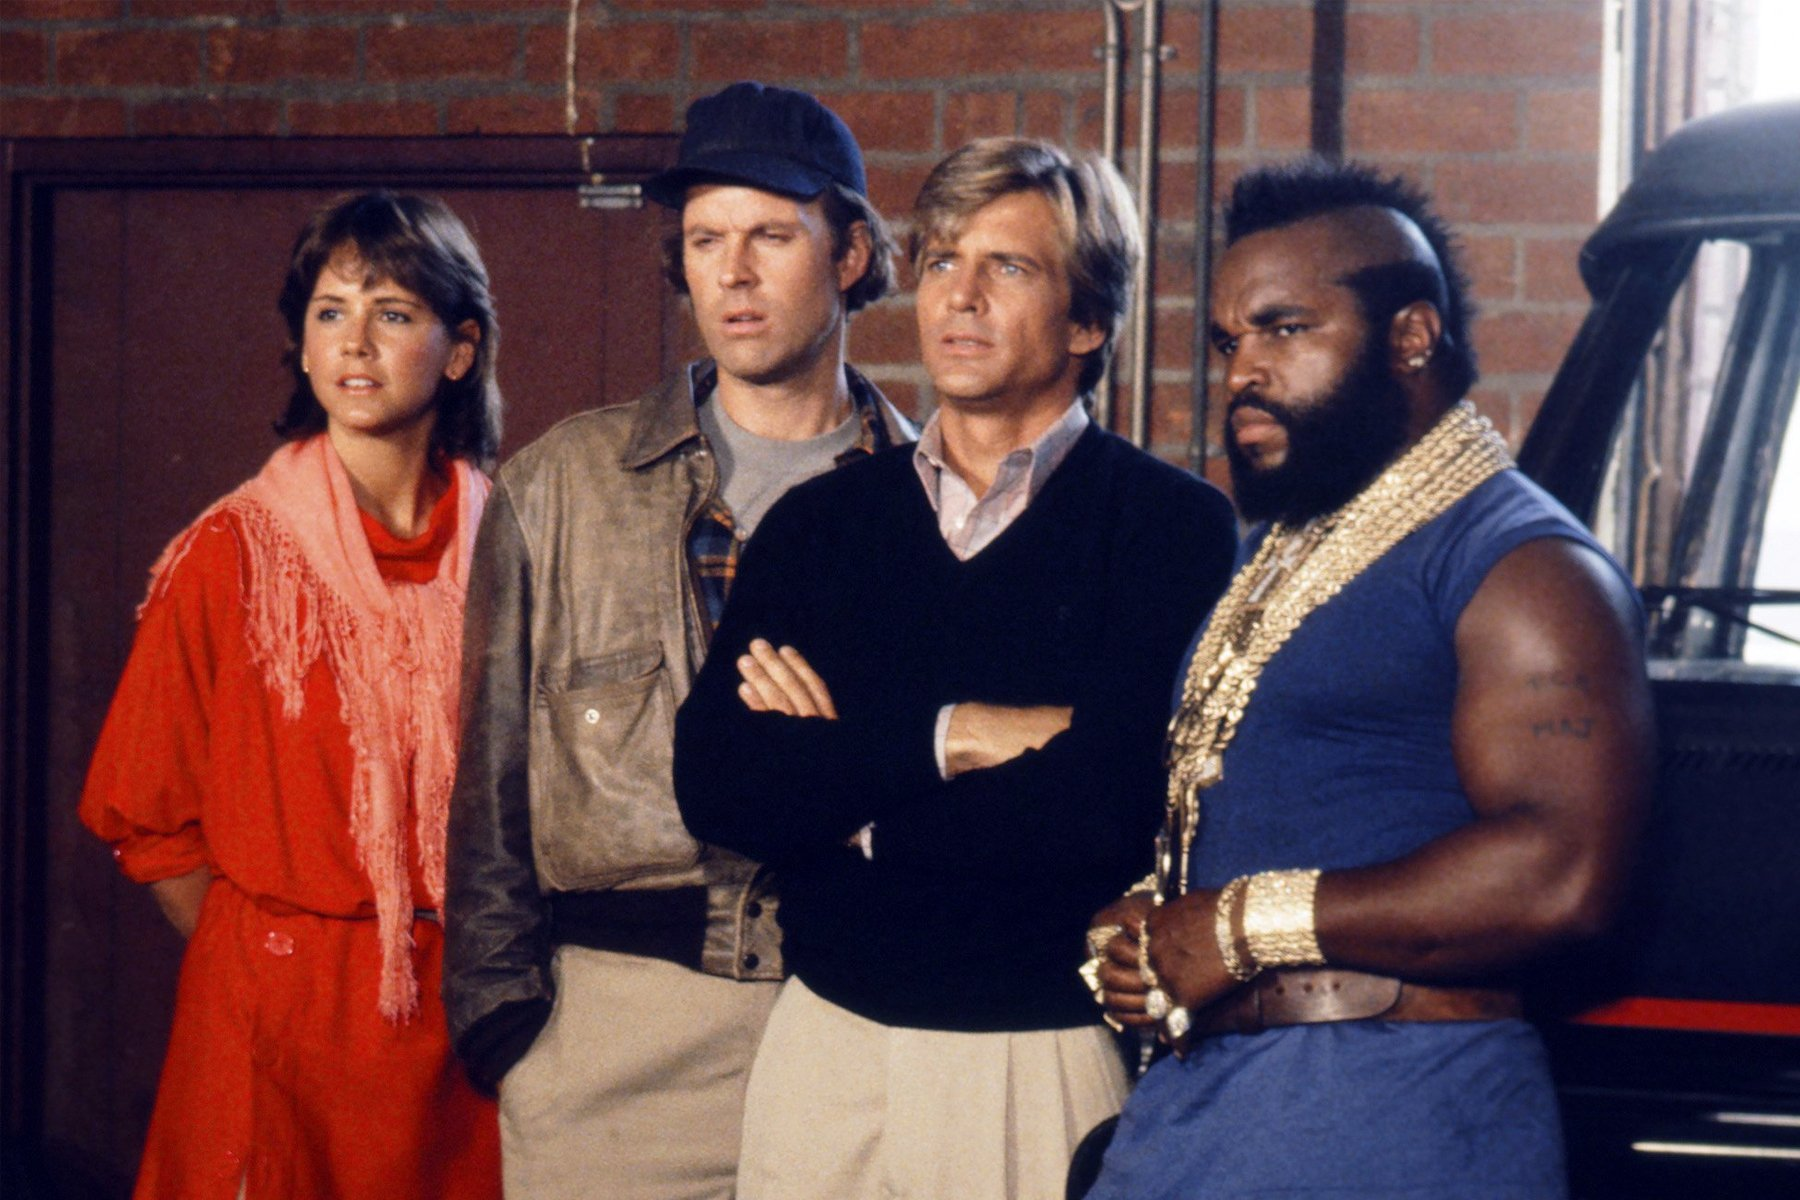 a team photo 1 20 Things You Probably Didn't Know About The A-Team